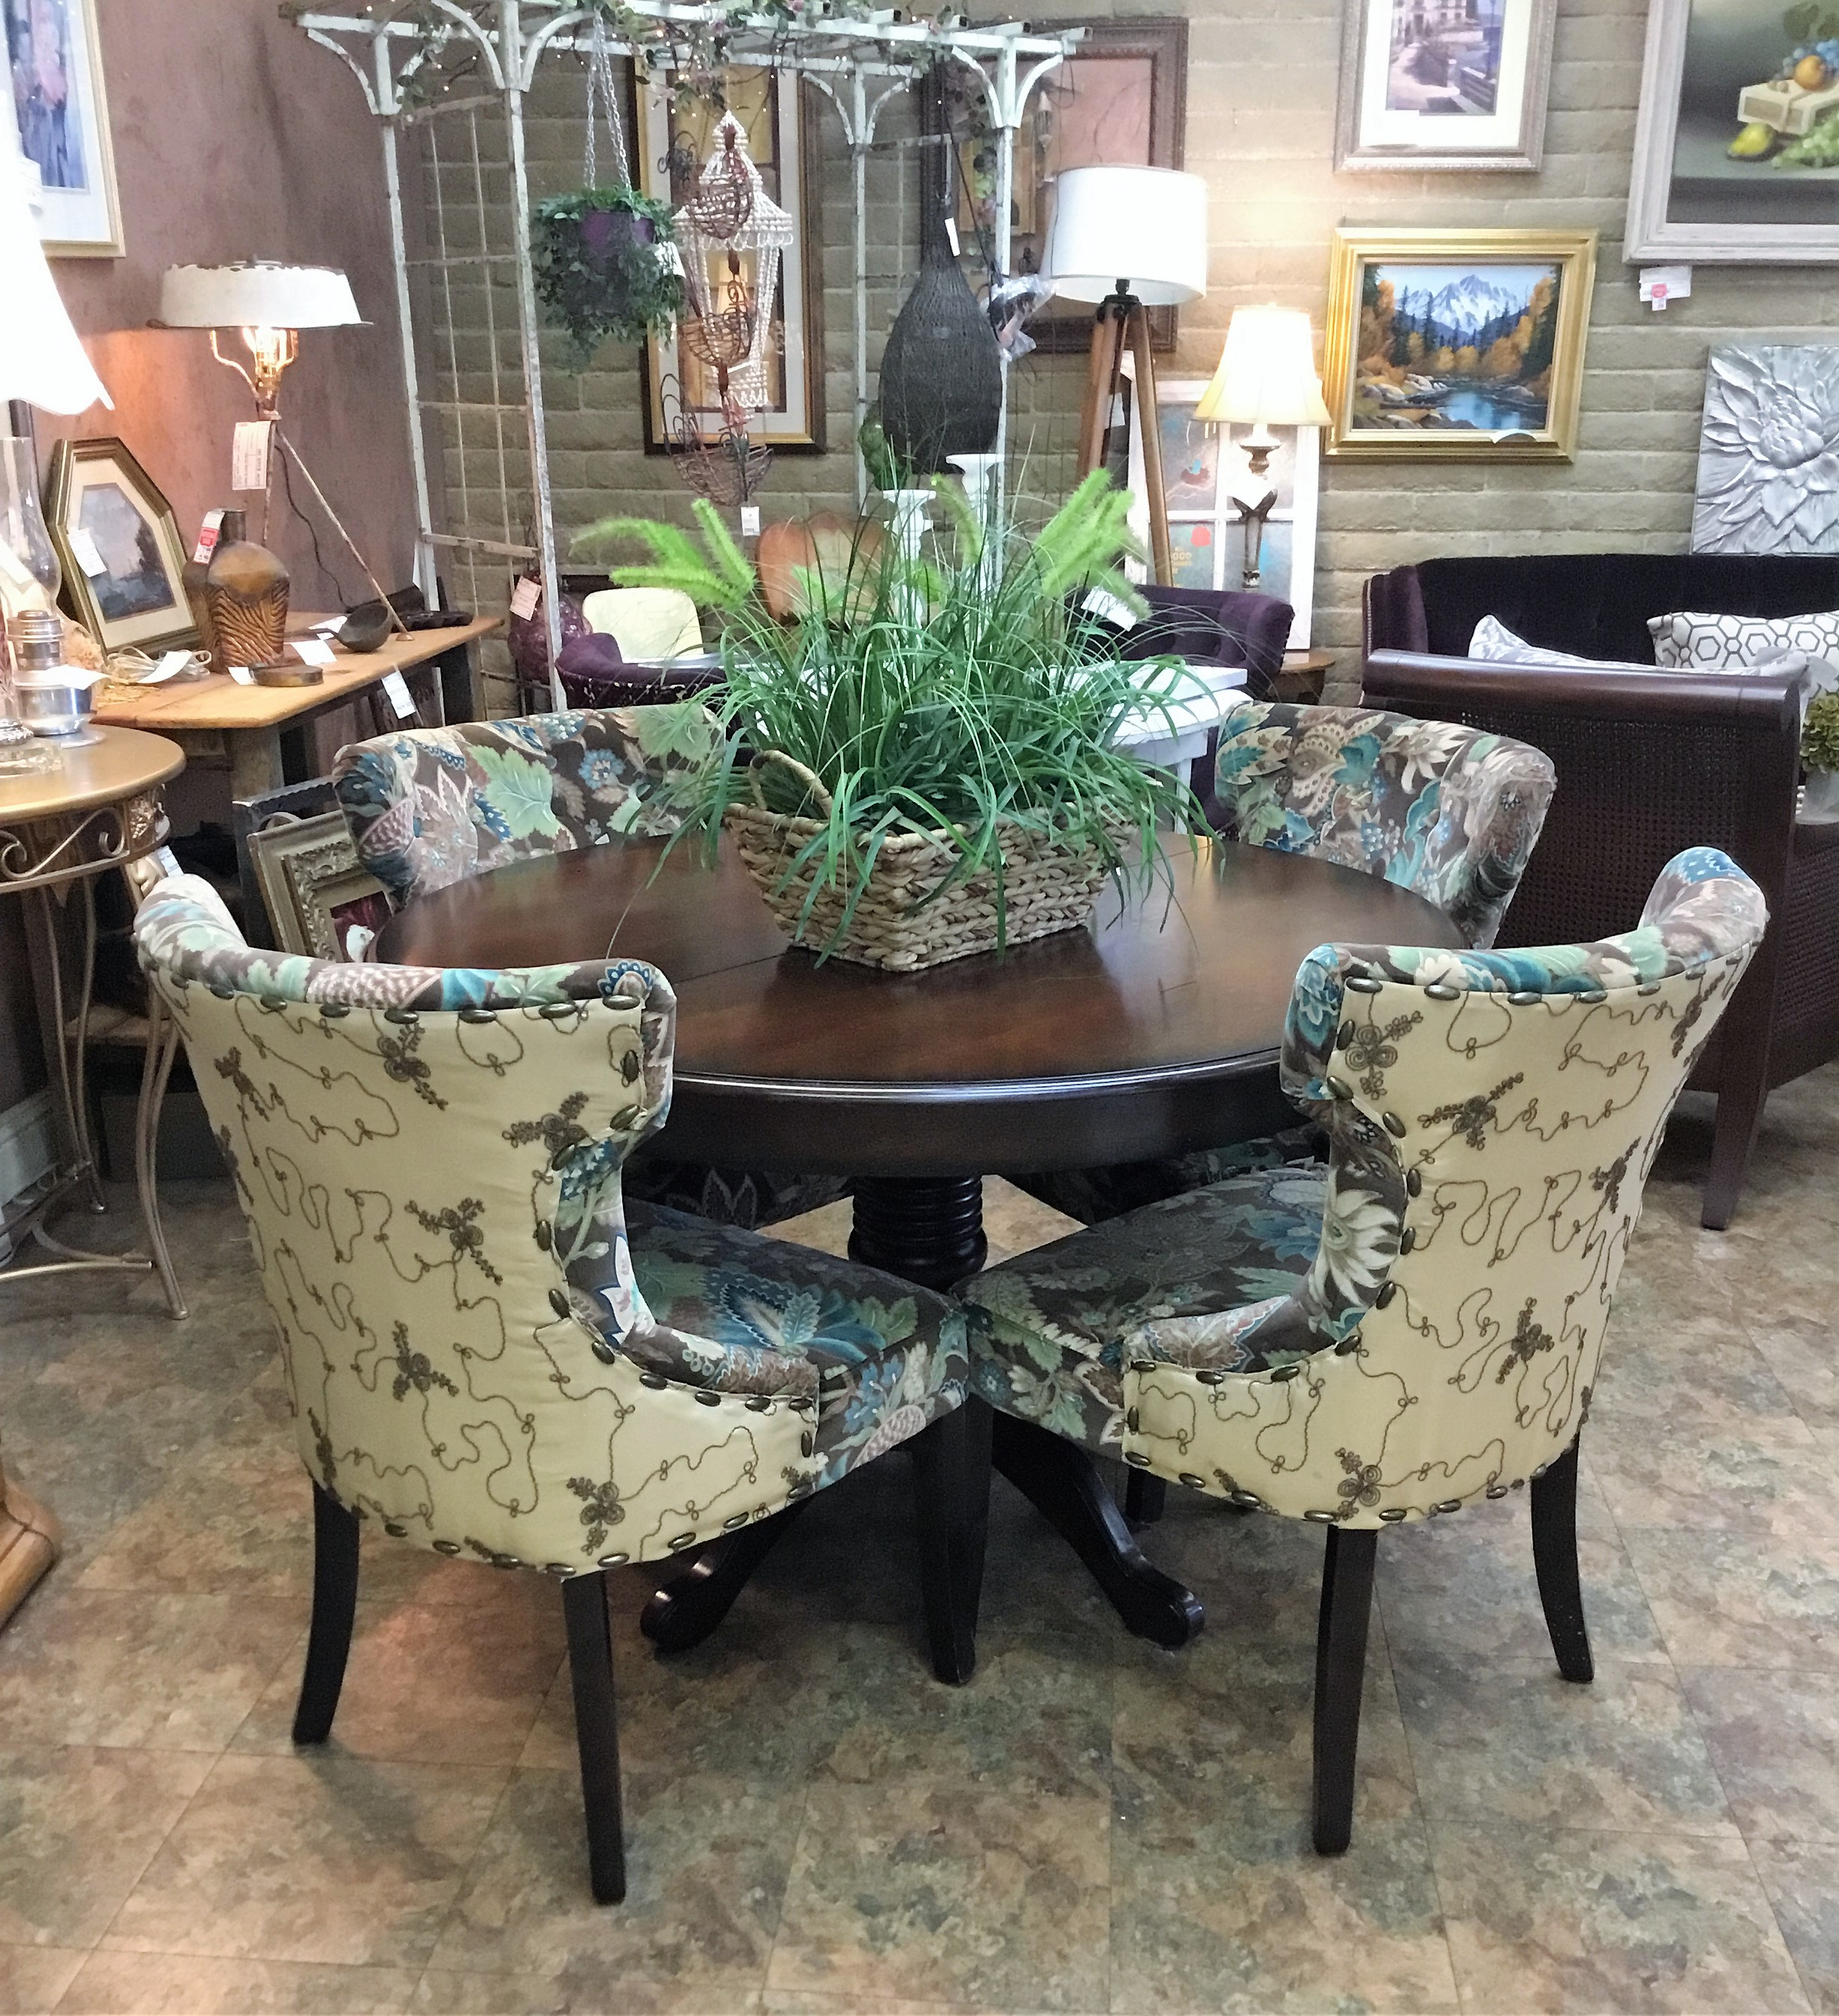 pier one round chair oversized leather dining table w 4 1 chairs leaf finders keepers jpg